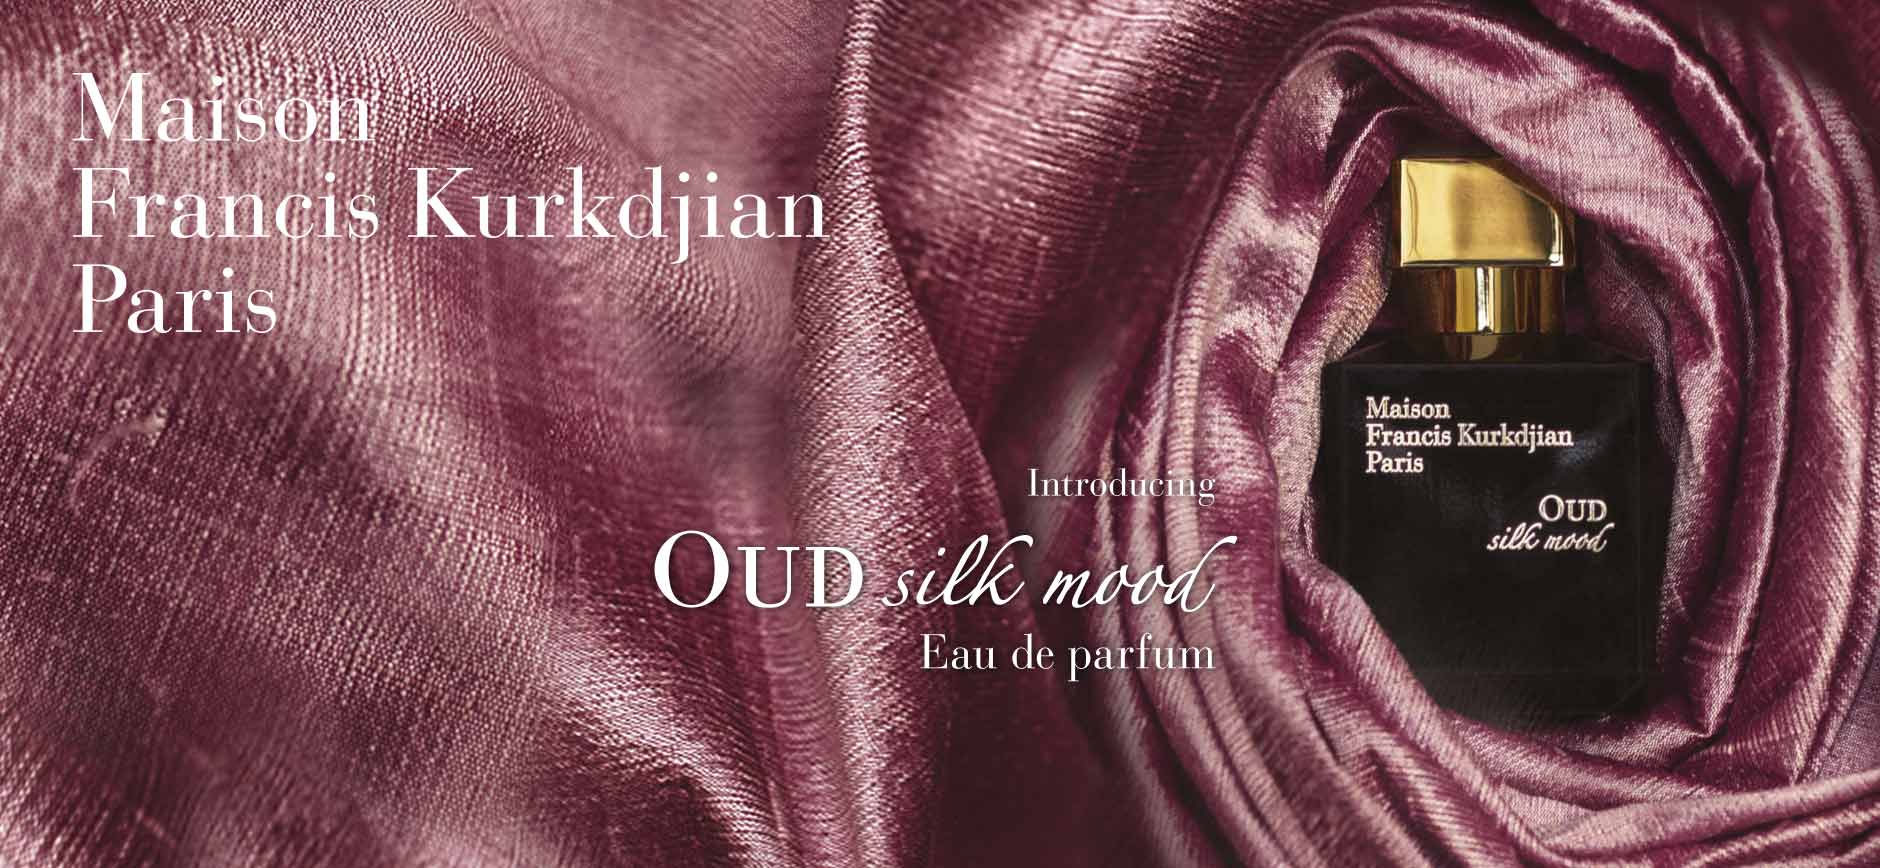 Maison Francis Kurkdjian Paris: Introducing Oud silk mood - Eau de parfum